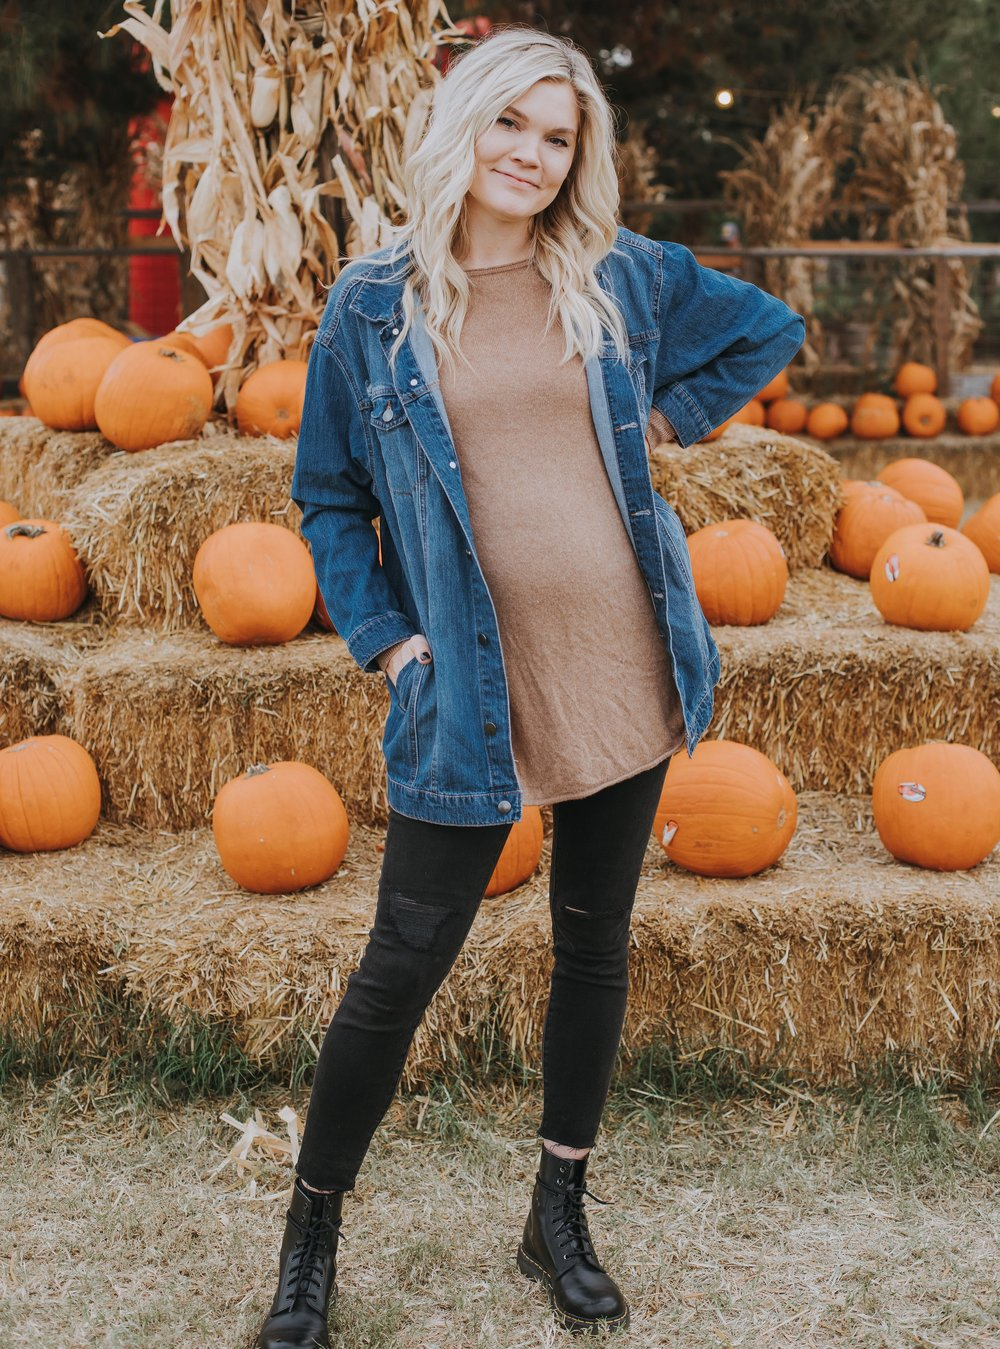 - Let's be honest, we all feel a little more relaxed in oversized tops paired with some leggings or ripped jeans! Oversized tops help us let the belly out a little after all these holiday meals we are binging on this time of year… haha! I have linked all of the cutest styles I could find below, including the ones I'm pictured in! They are ranging in price, and a few of them are even on sale!! Check them out and let me know which is your fave!